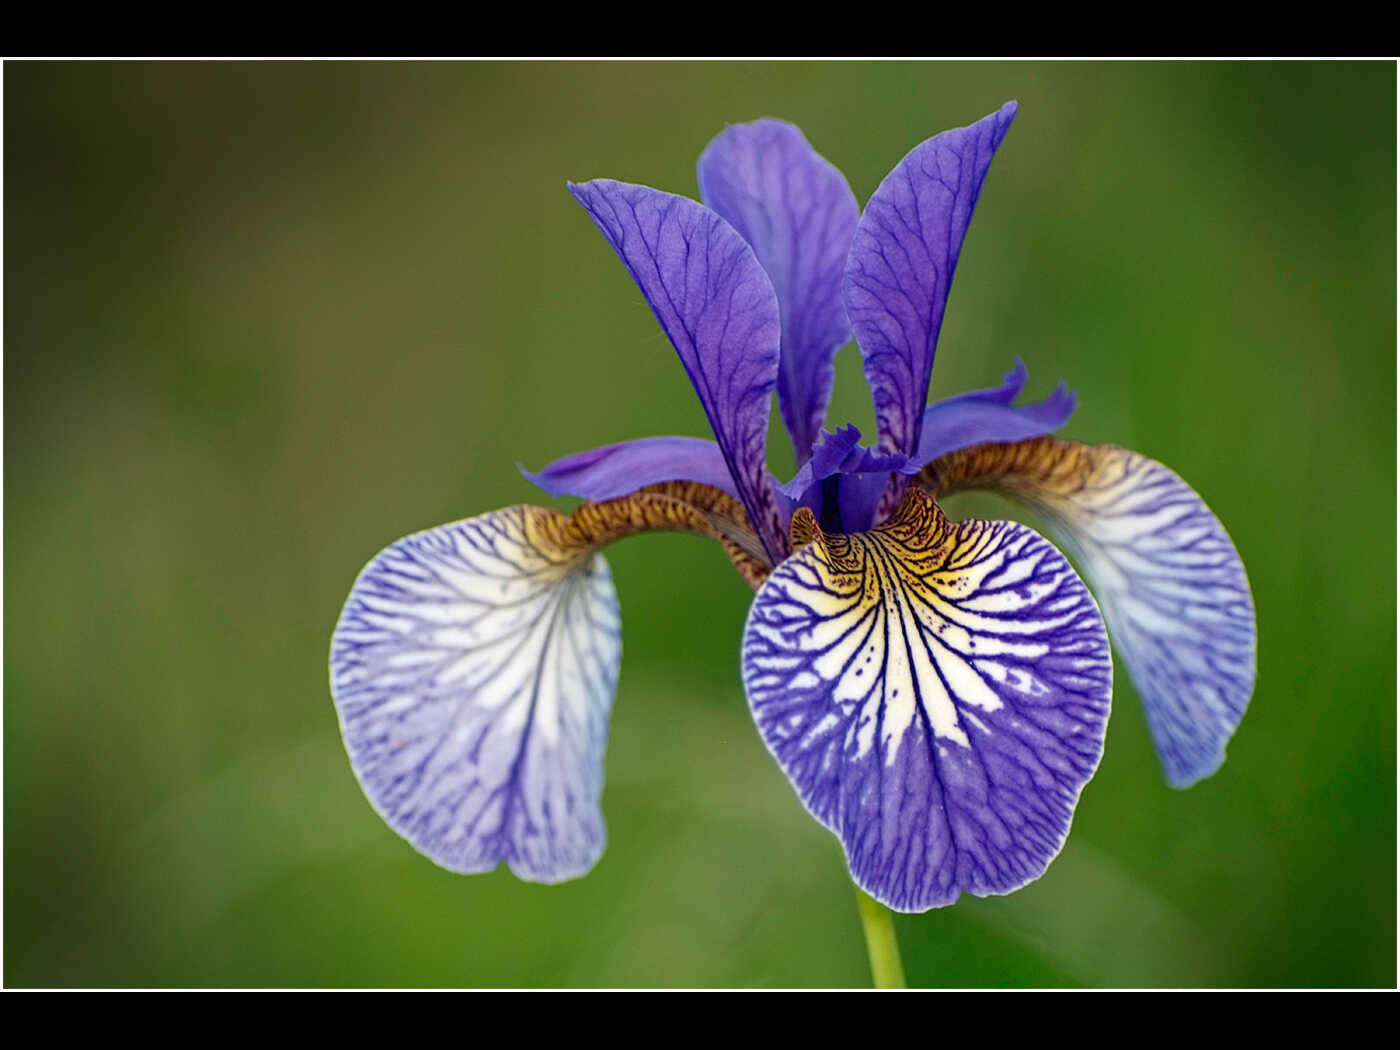 Bob Robinson-Iris-Very Highly Commended.jpg